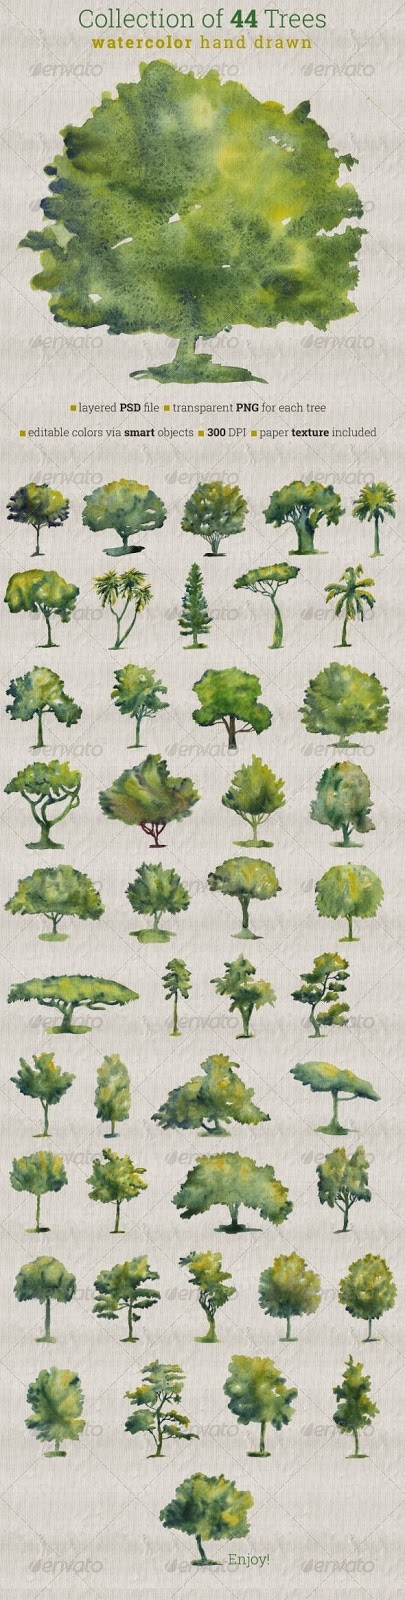 Various trees painted in watercolour